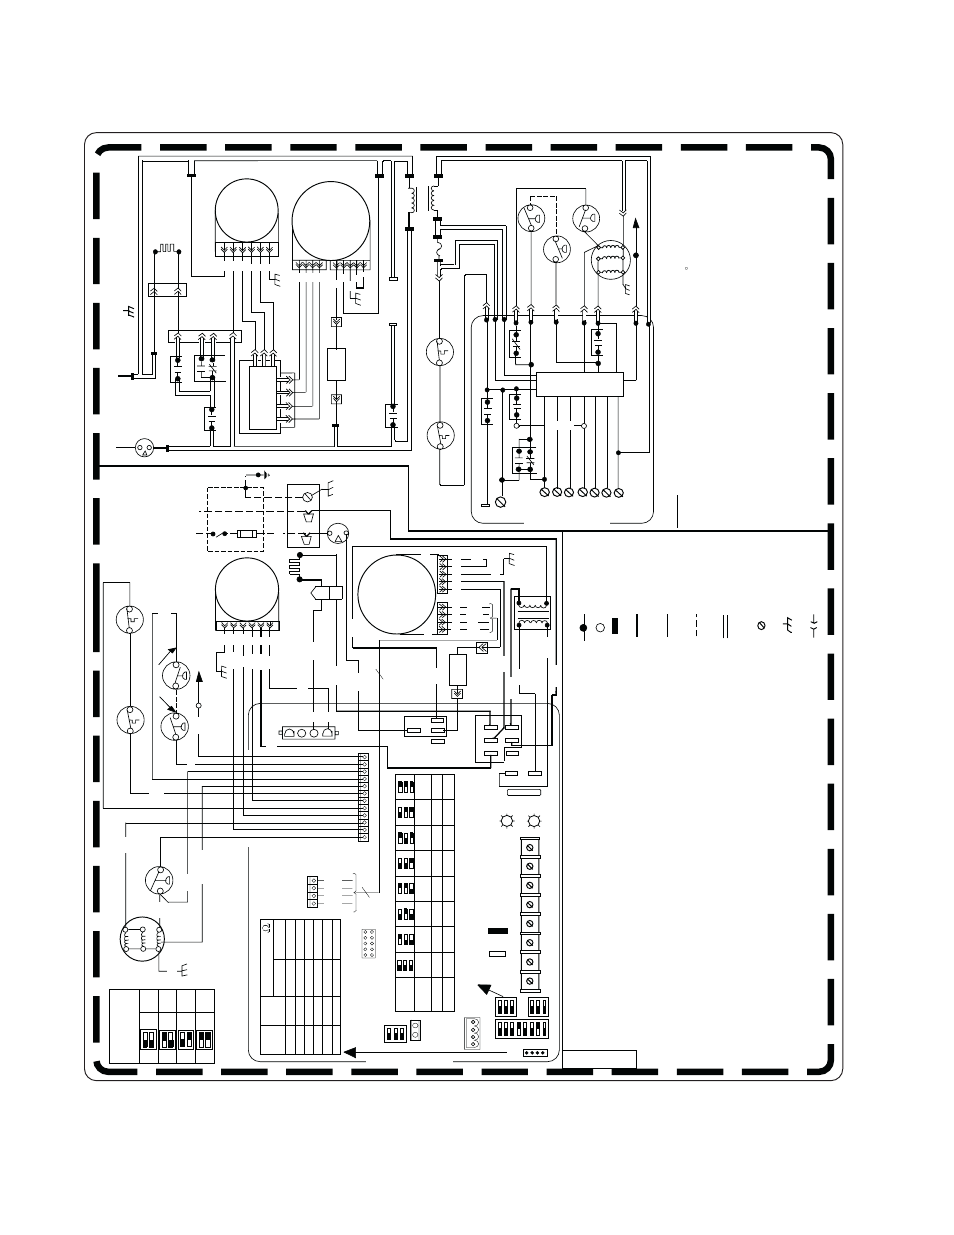 medium resolution of bryant wiring diagram wire management u0026 wiring diagram bryant air conditioner wiring diagram fig 18